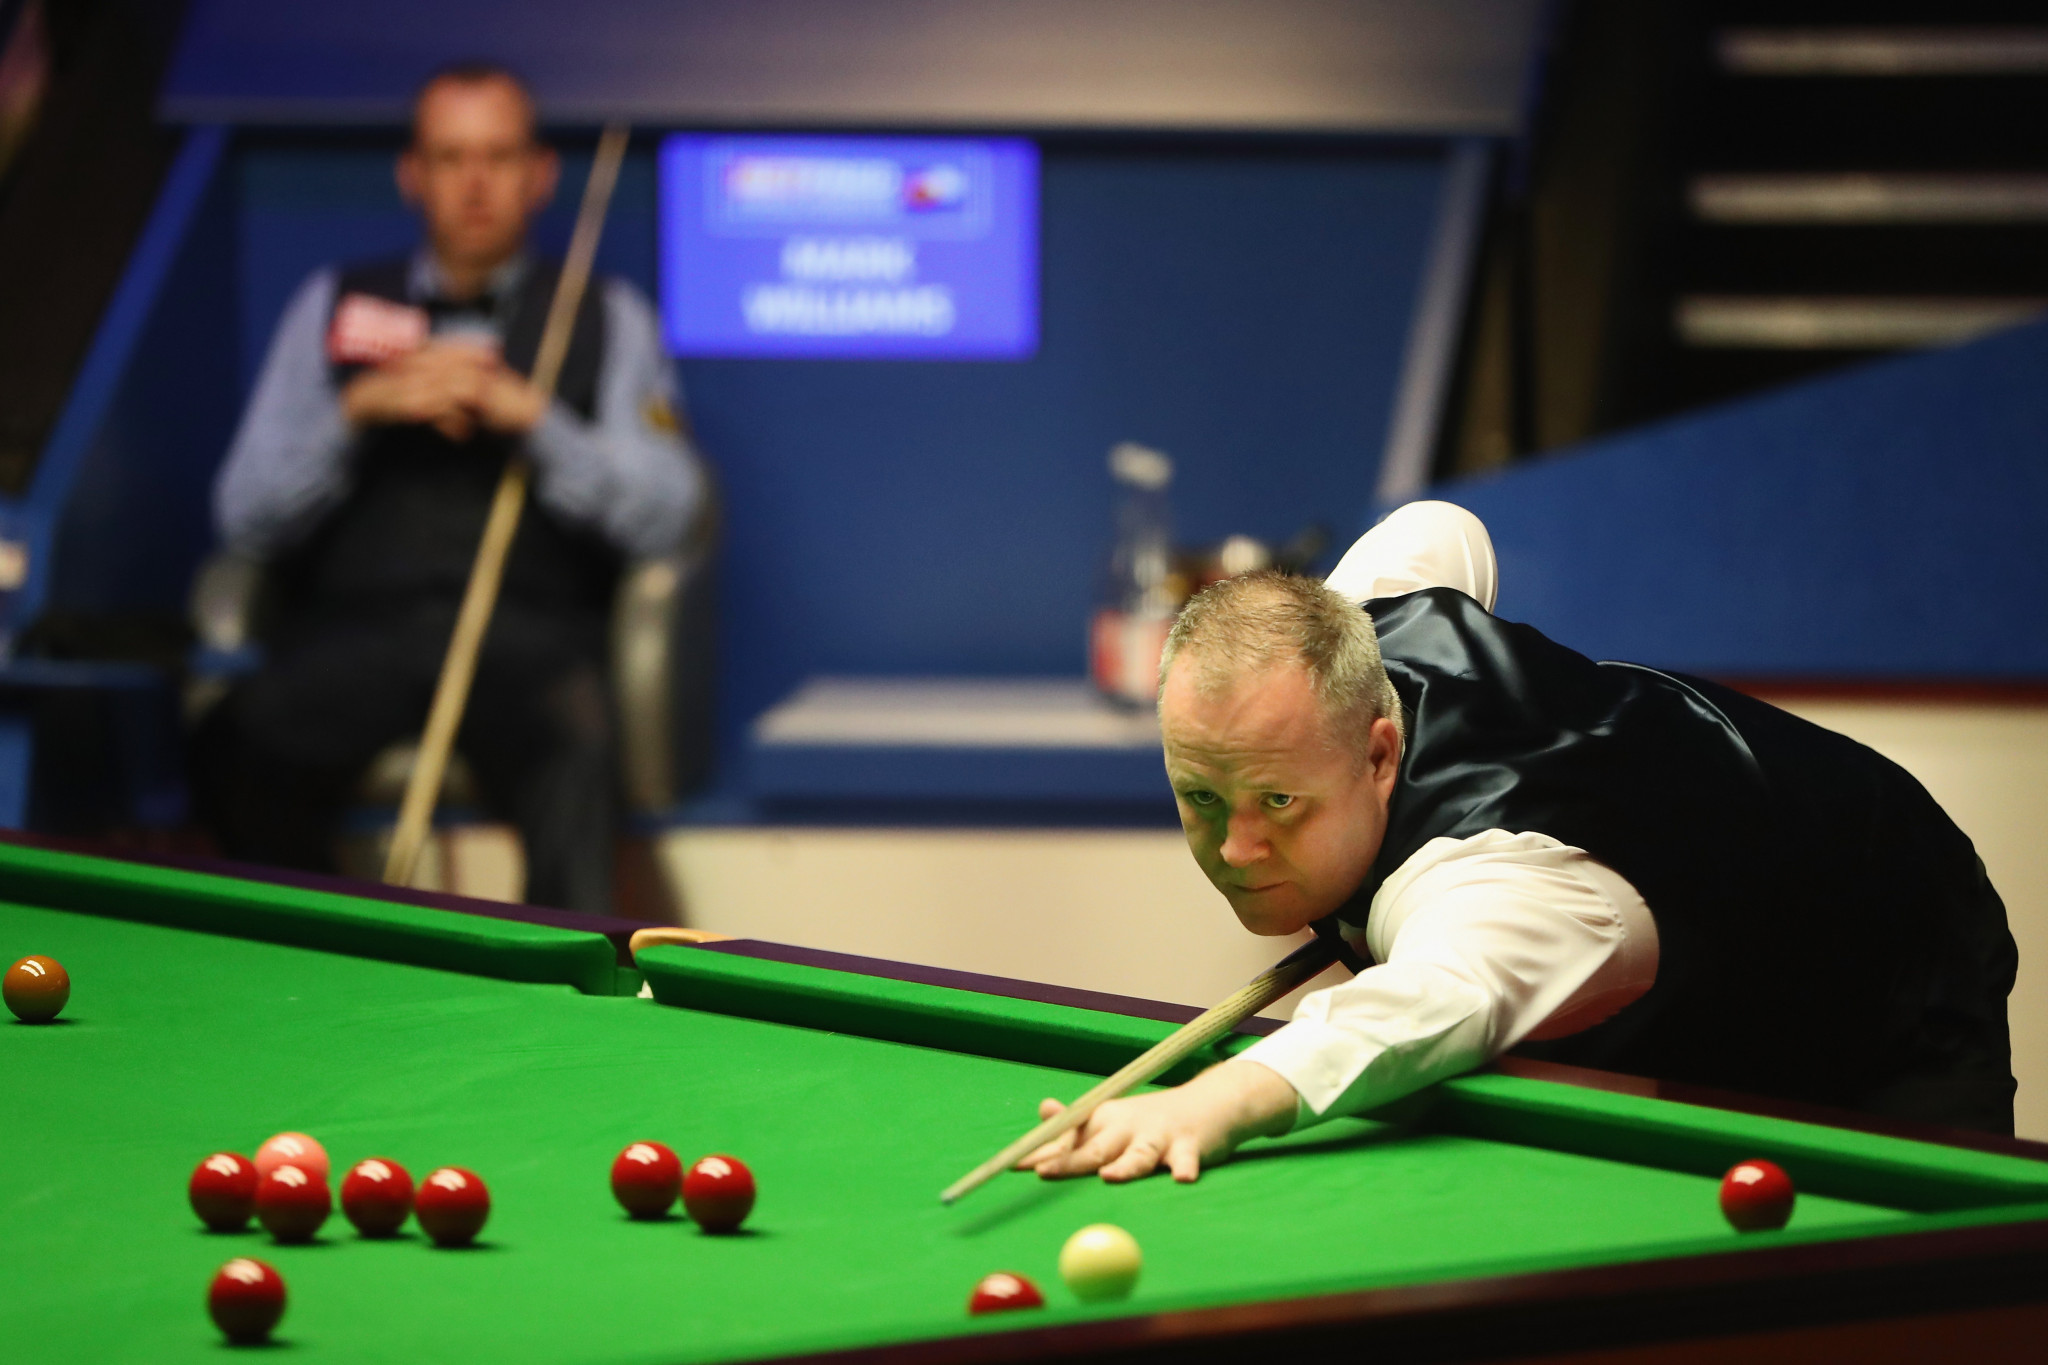 John Higgins will need to come from behind if he is to win a fifth world title ©Getty Images